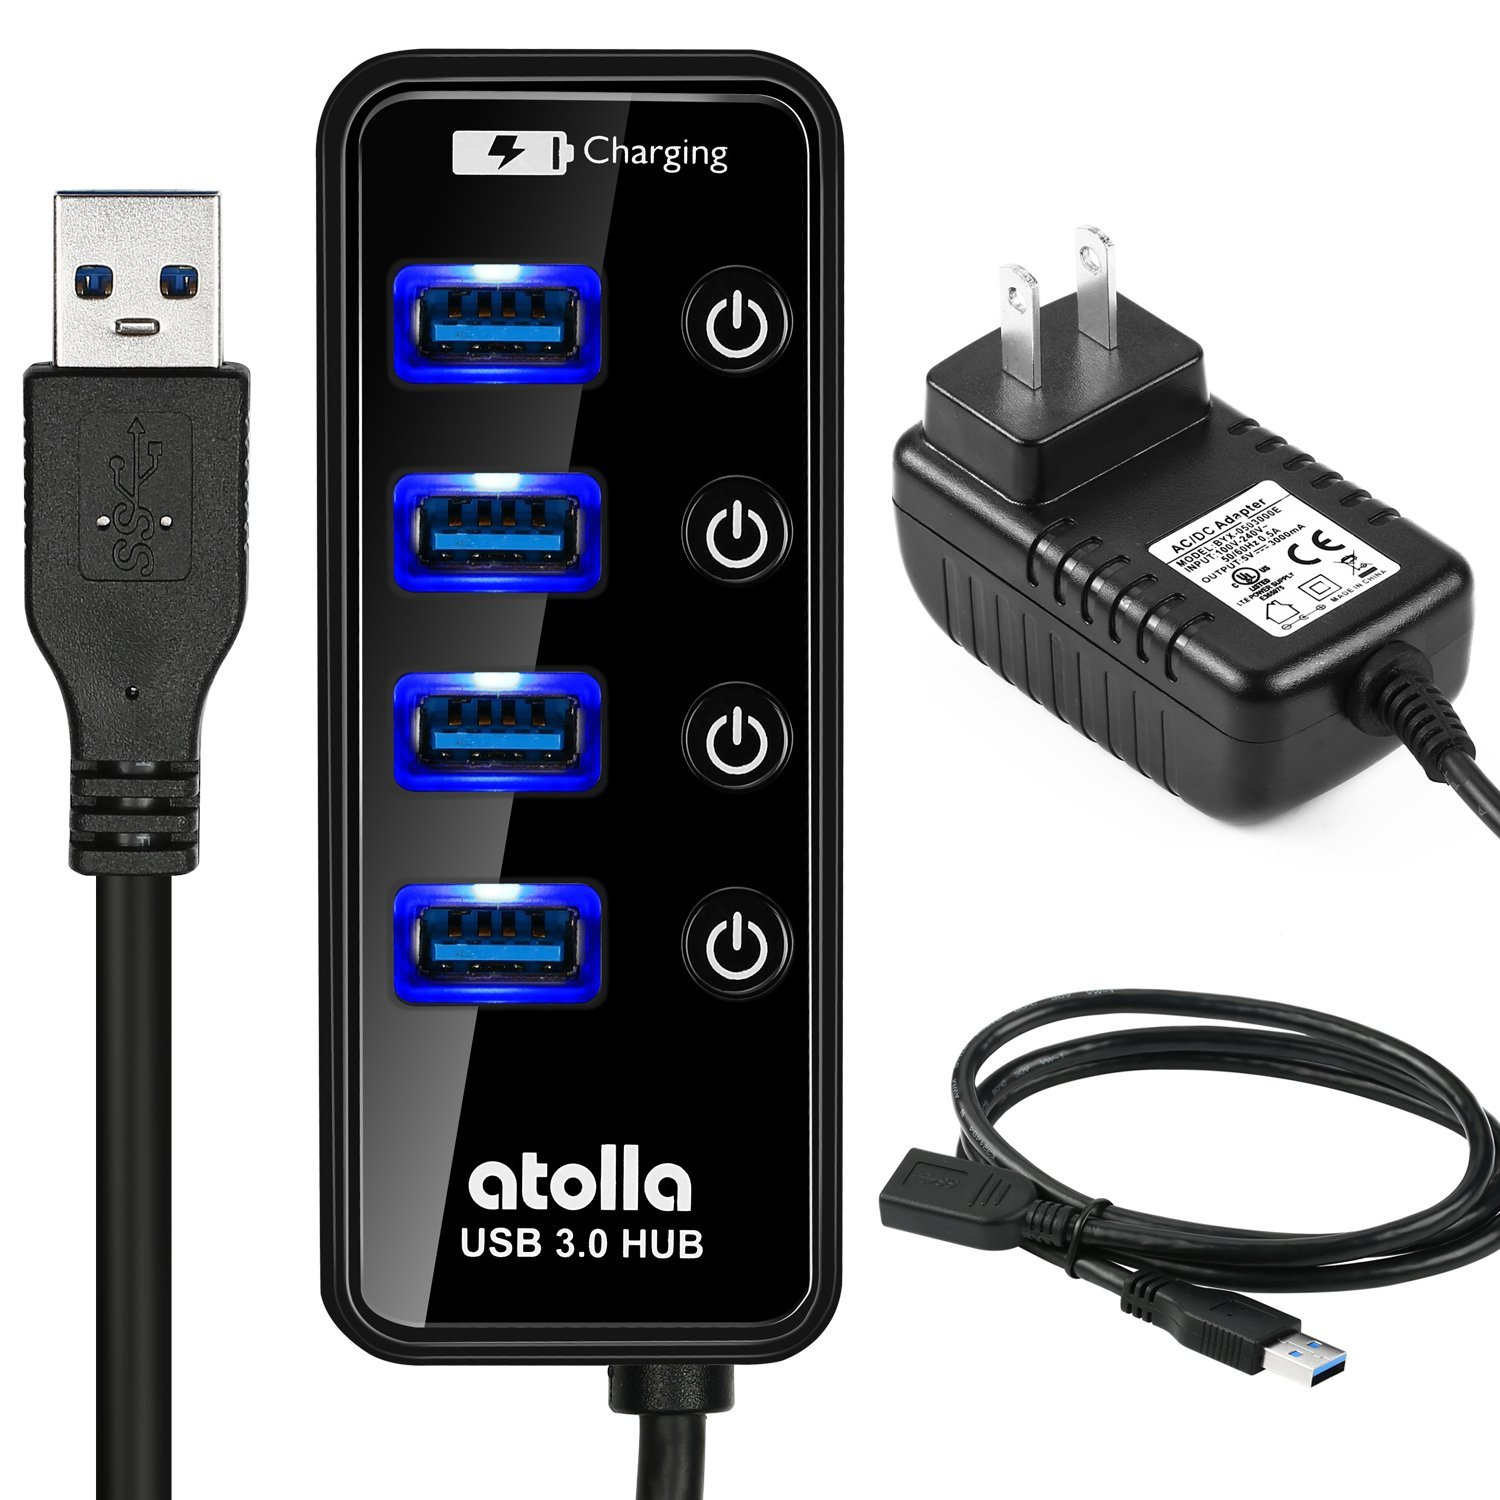 Powered USB Hub, atolla USB 3.0 Hub 4 + 1 Data Transfer and Charging Multiport with 15W (5V/3A) Power Supply Adapter and 3.3ft Meter USB 3 Extension Cable